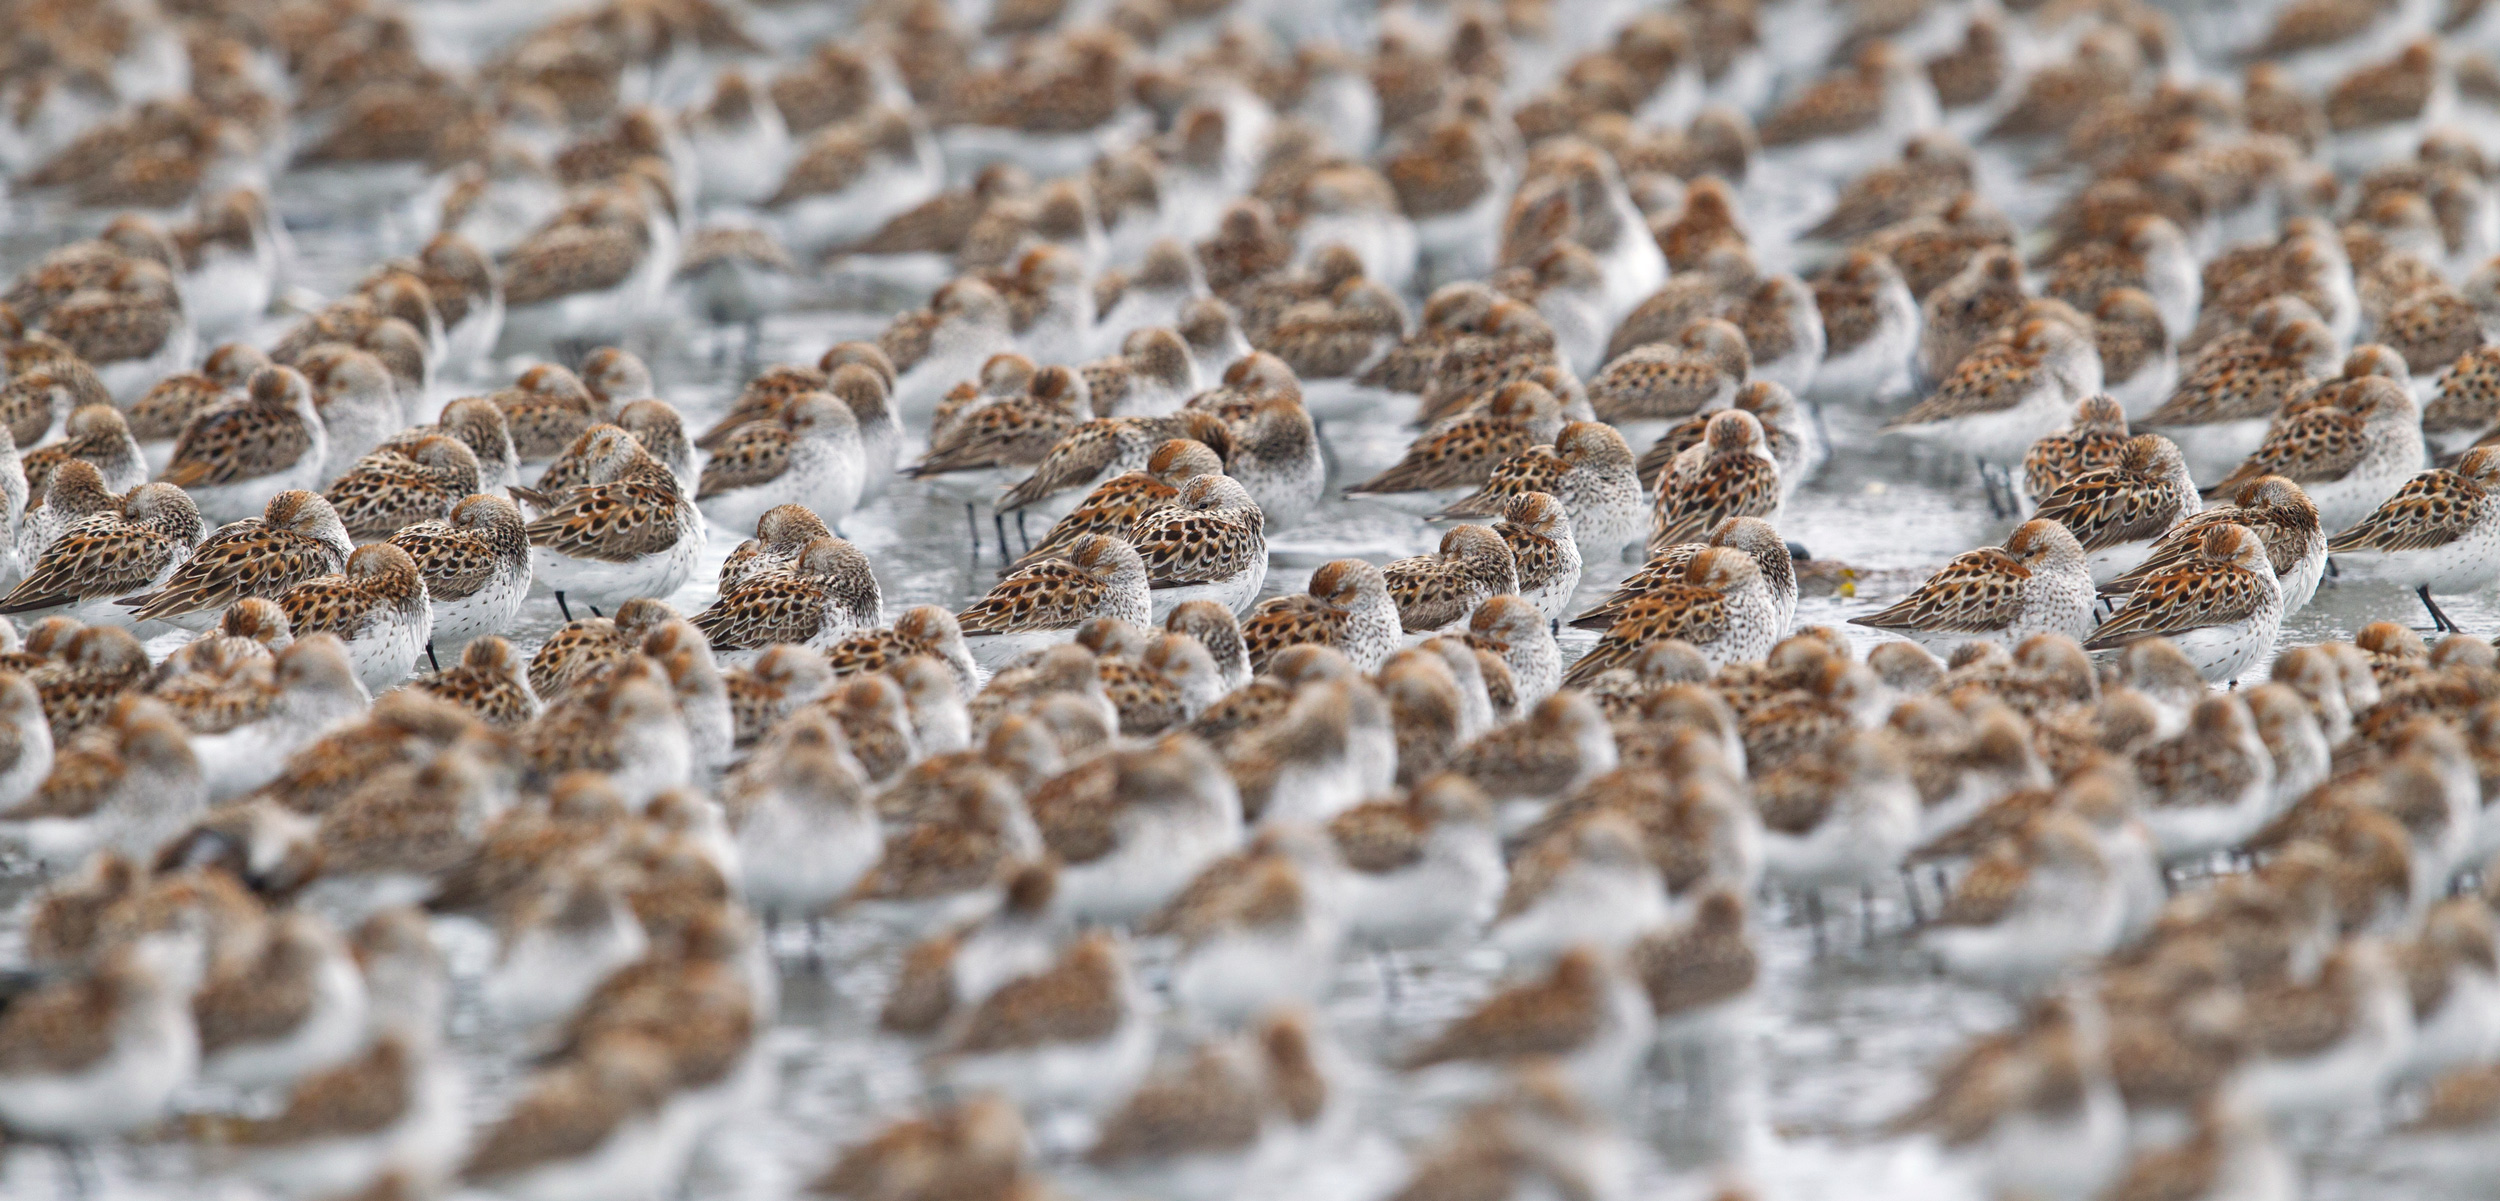 Western sandpipers flock by the thousands during migration, one of the natural world's great spectacles. Photo by Donald M. Jones/Minden Pictures